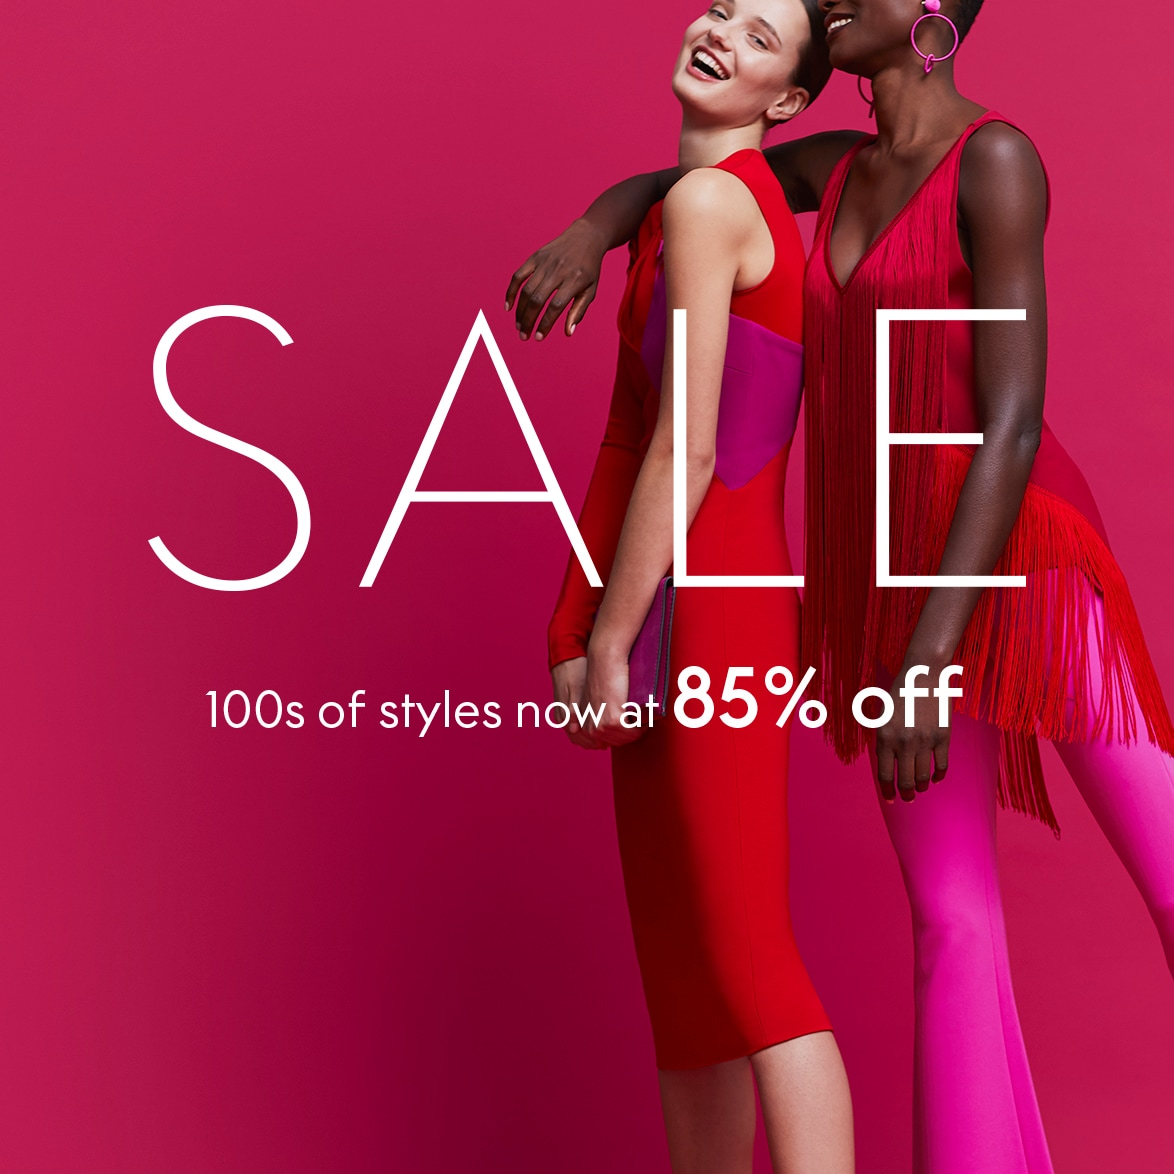 MORE STYLES AT 85% OFF